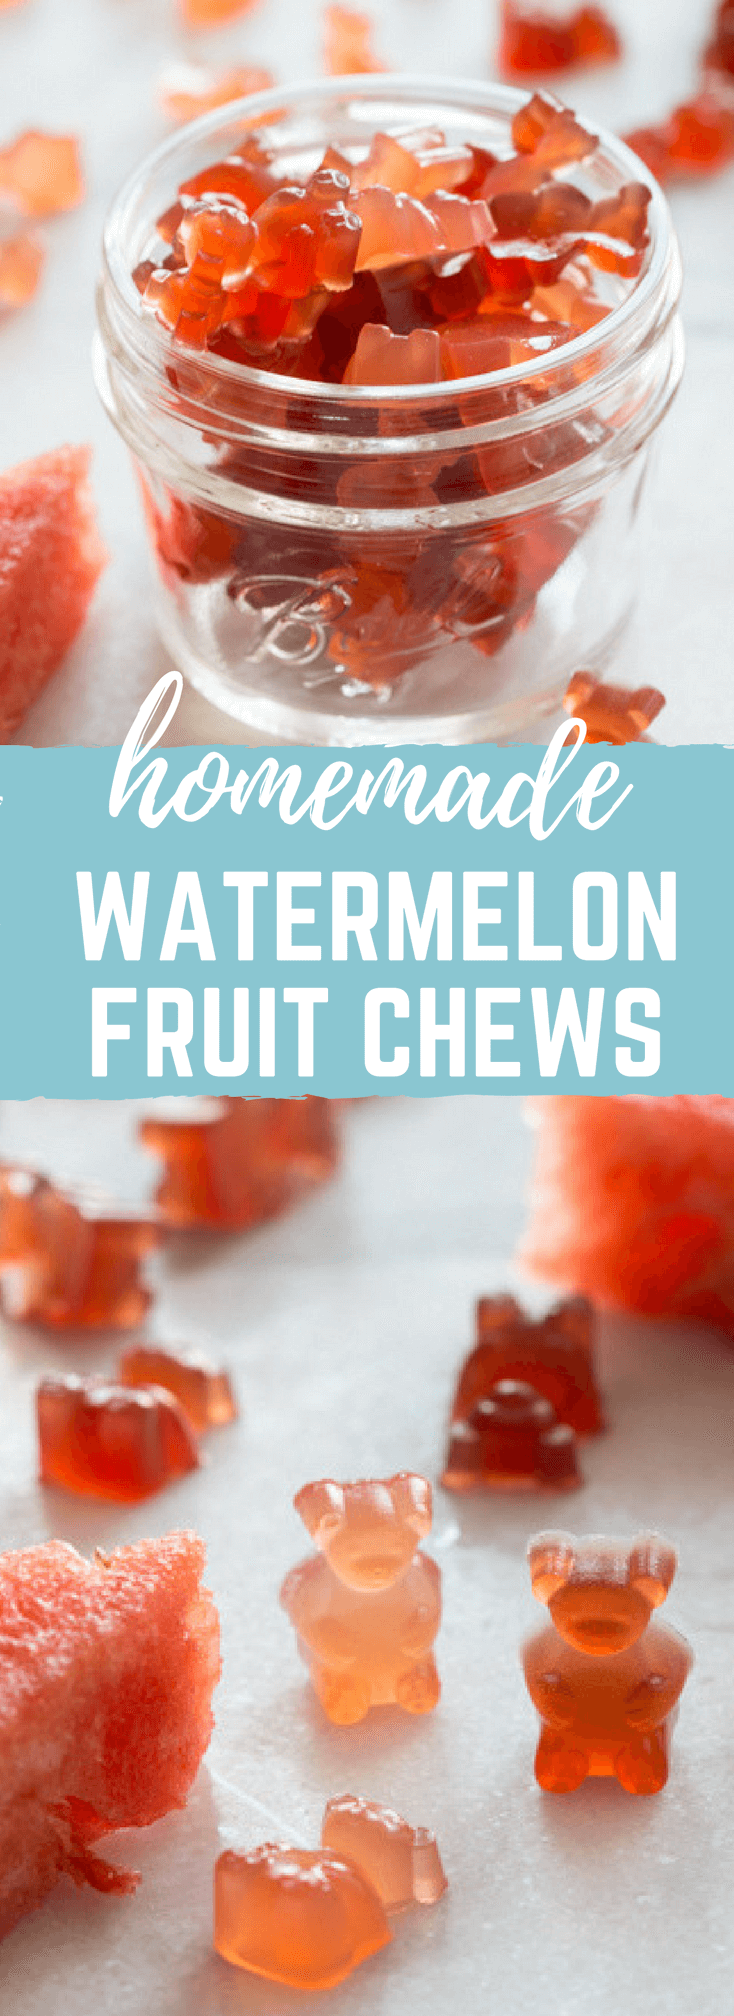 Homemade Sour Watermelon Fruit Chews. An easy whole fruit gummy bears recipe made with watermelon juice. Kids love these gummies!